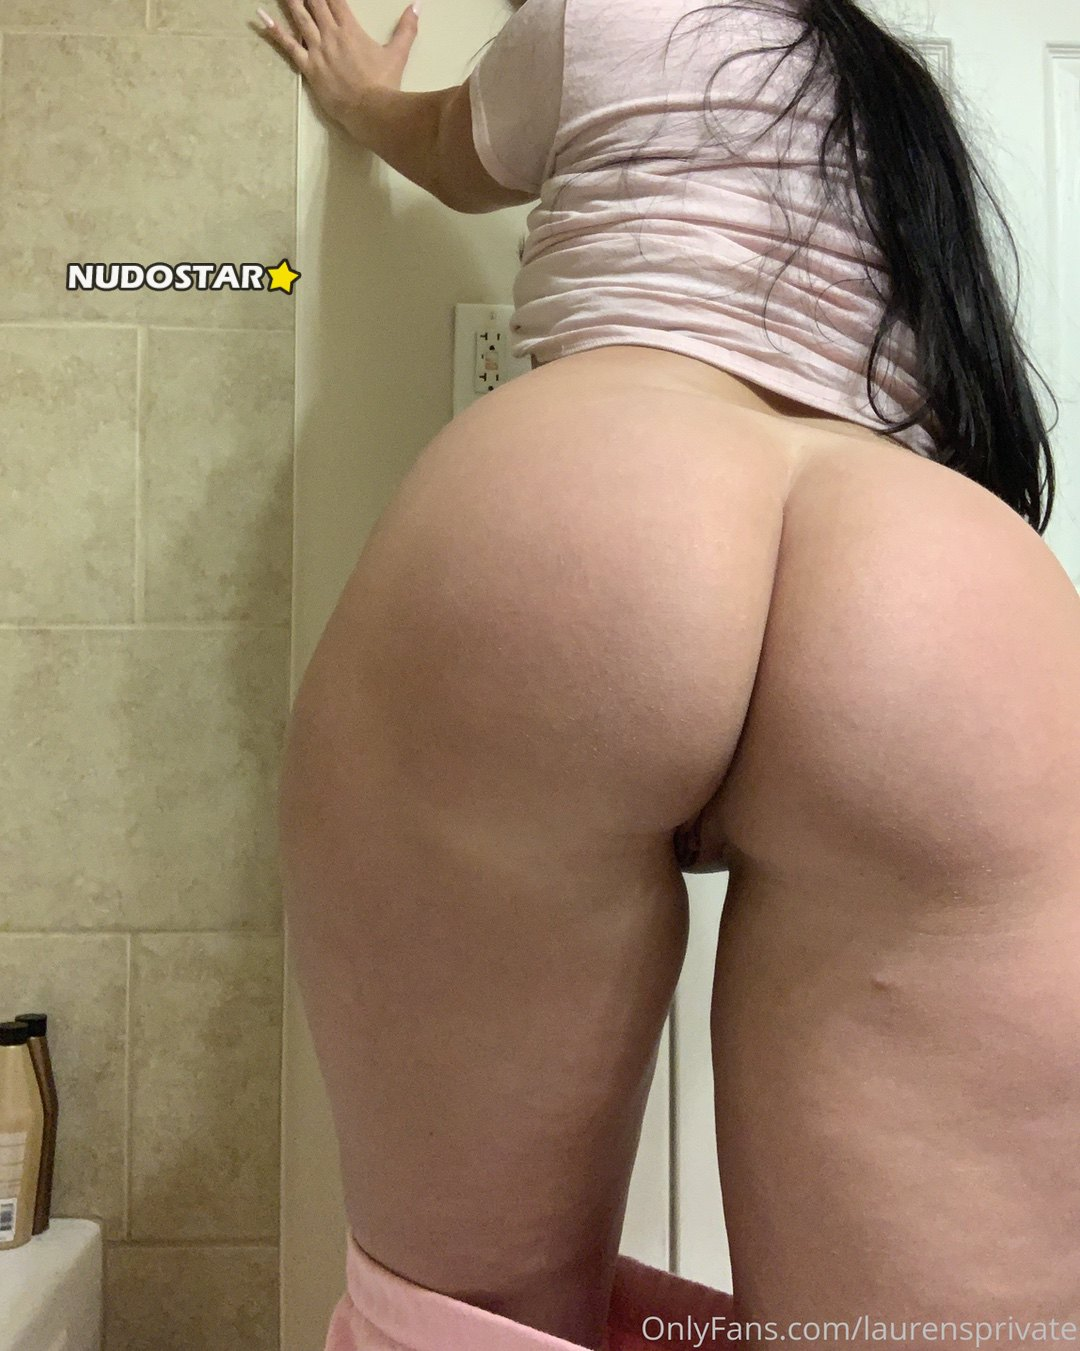 laurensprivate Onlyfans Leaks (320 photos + 6 videos)